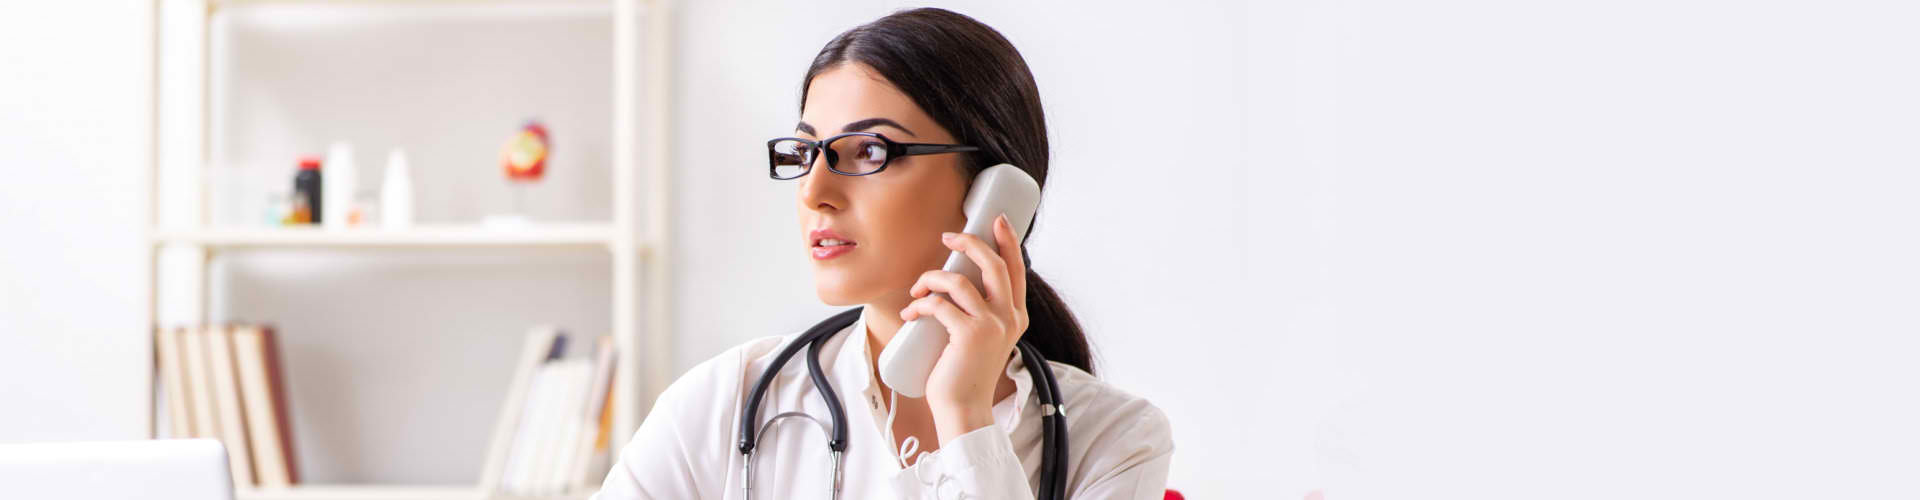 doctor in a phone